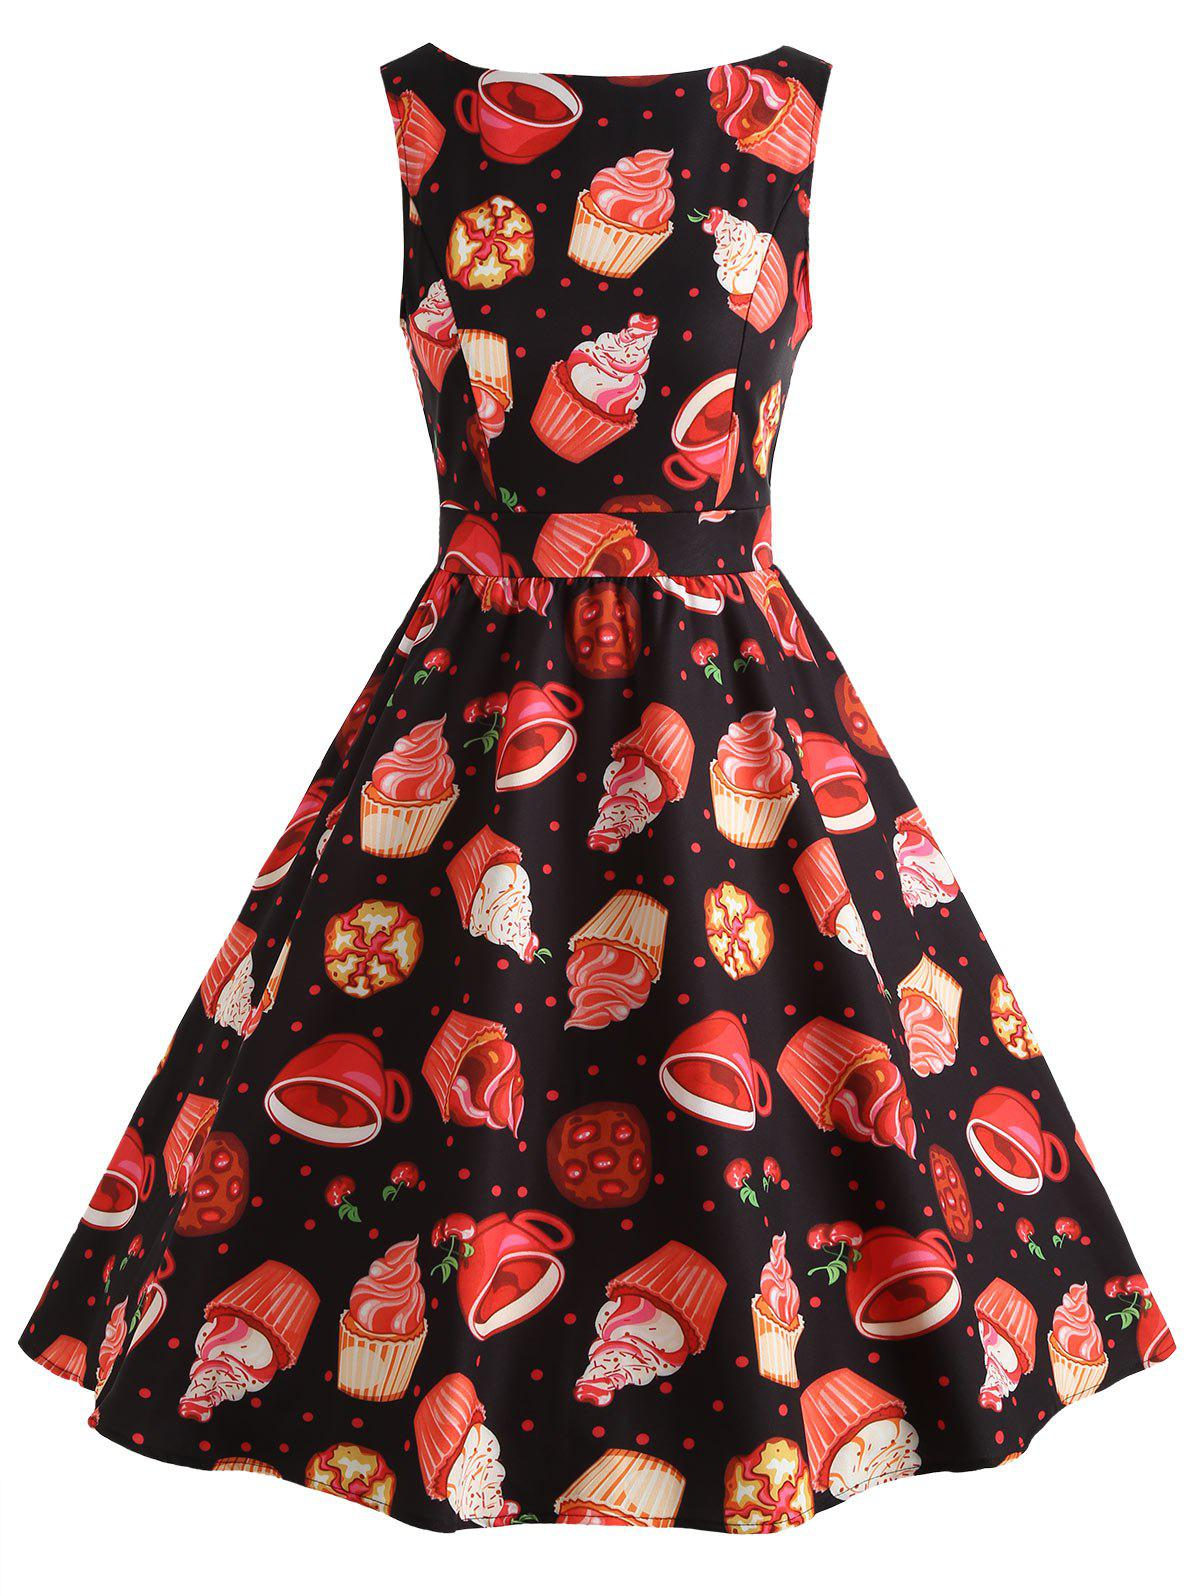 New Vintage Ice Cream Print Skater Dress